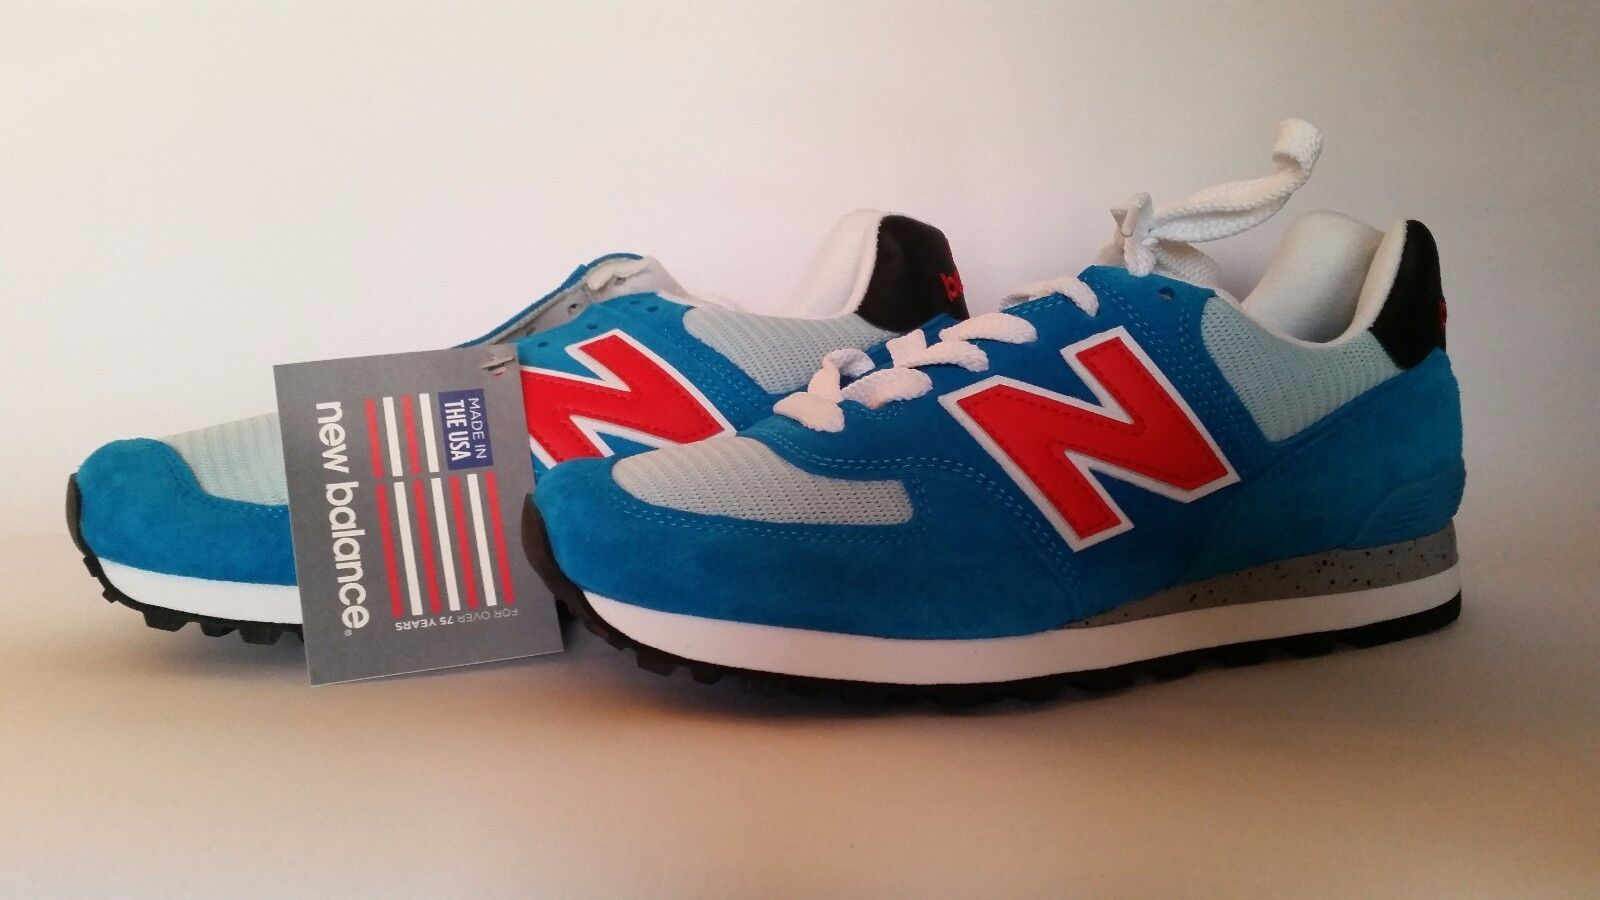 NEW BALANCE CLASSICS 574 trainersTaille 9 new with box